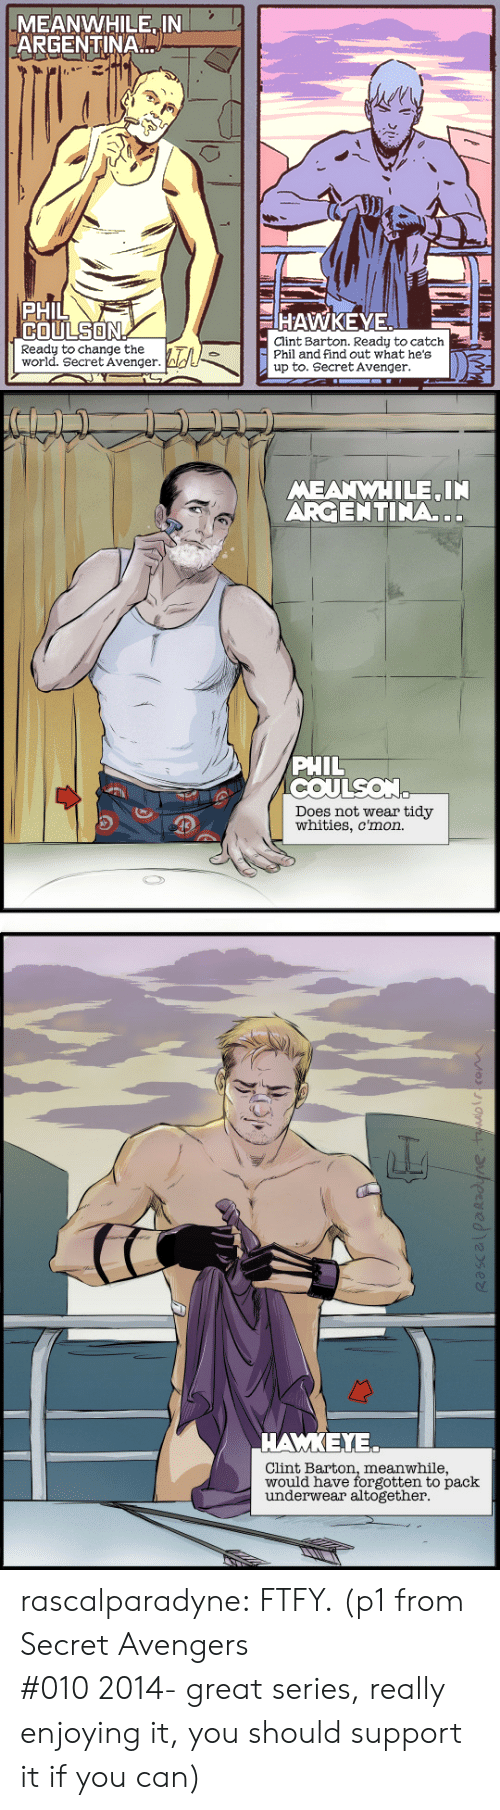 avenger: MEANWHILE IN  ARGENTINA  PHIL  COULSON  HAWKEYE  Clint Barton. Ready to catch  Phil and find out what he's  up to. Secret Avenger  Ready to change the  world. Secret Avenger.   MEANWHILE IN  ARGENTINA..  PHIL  COULSON  Does not wear tidy  whities, c'mon.   ΑΜΚΕΥ.  Clint Barton, meanwhile,  would have forgotten to pack  underwear altogether rascalparadyne: FTFY. (p1 from Secret Avengers #010 2014- great series, really enjoying it, you should support it if you can)